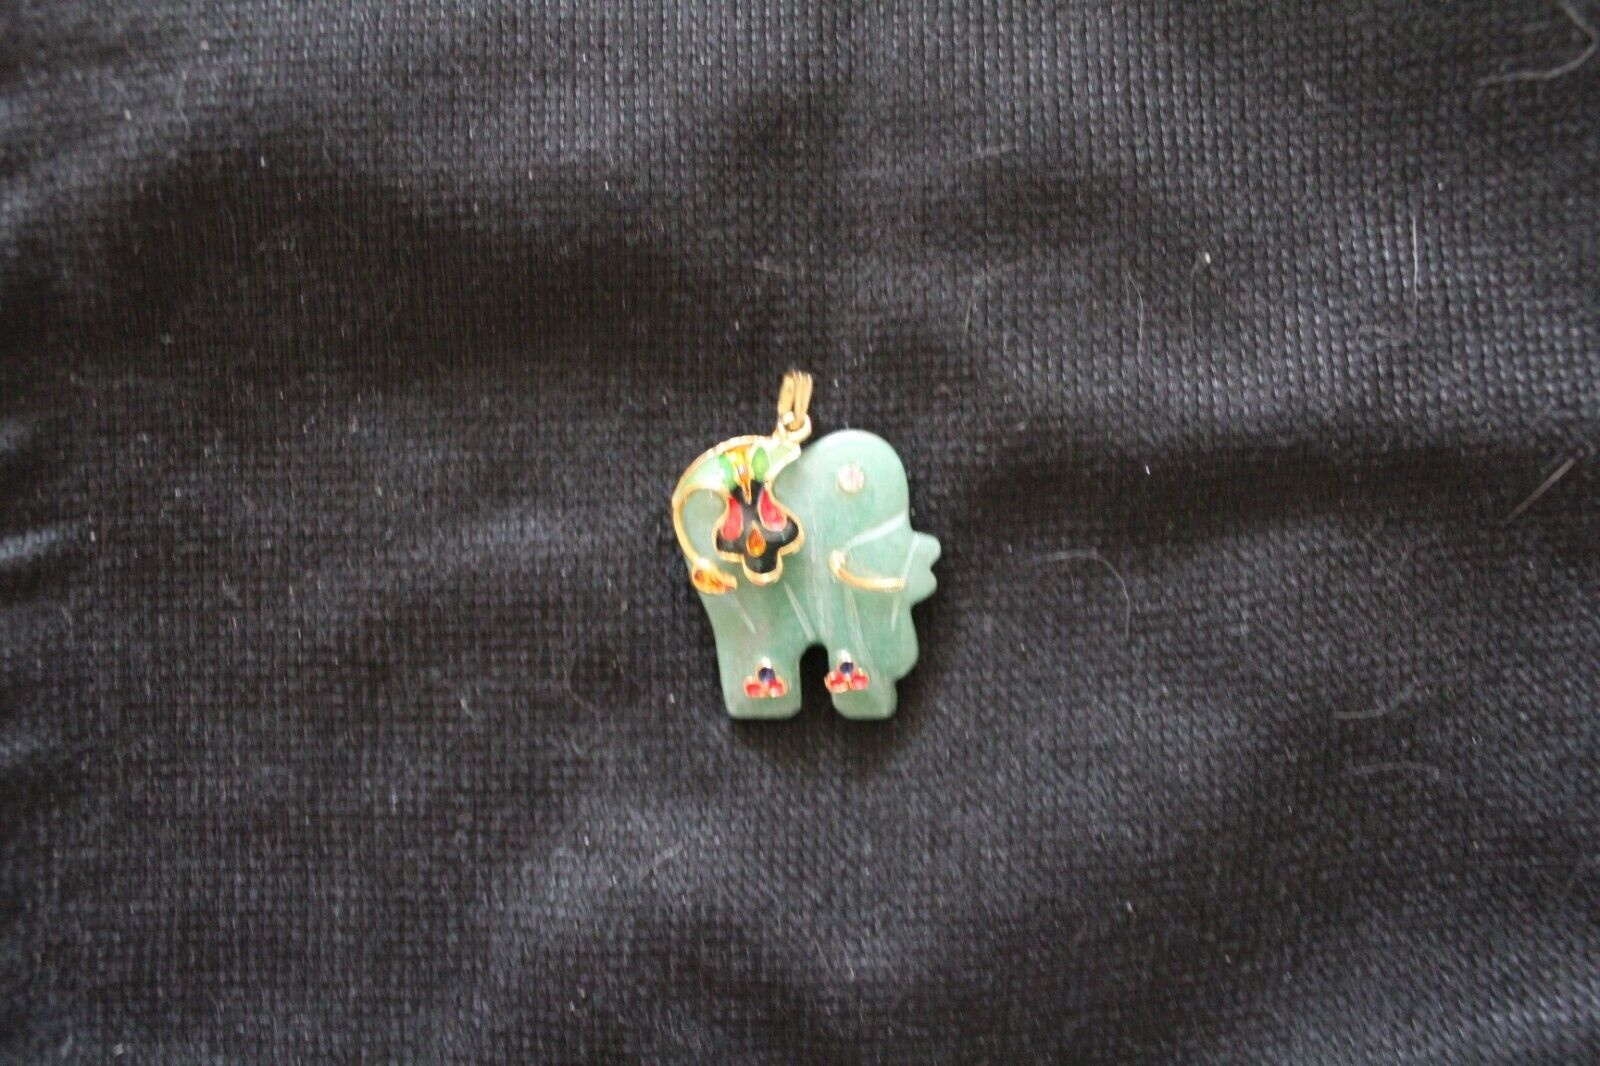 Elephant Pendant With Painted Enamel Accents - $25.00